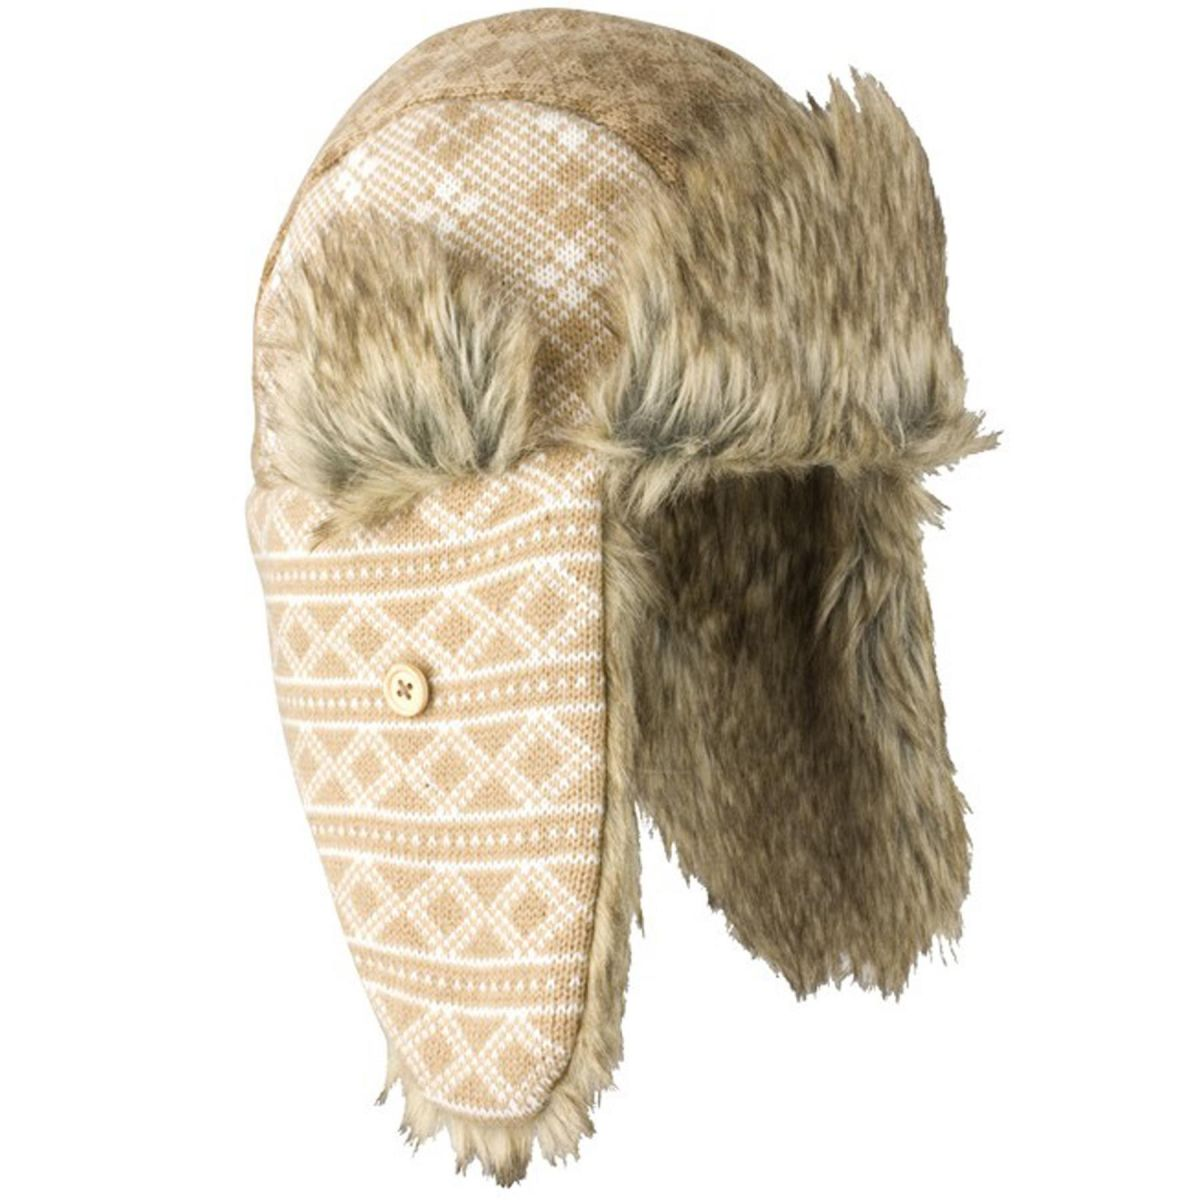 Accessories | Winter Sherpa  Faux Fur Fleece Russian Trapper Ear Protection Hats, From £4.99, Guest Brand, in  | Raw Denim Outlet